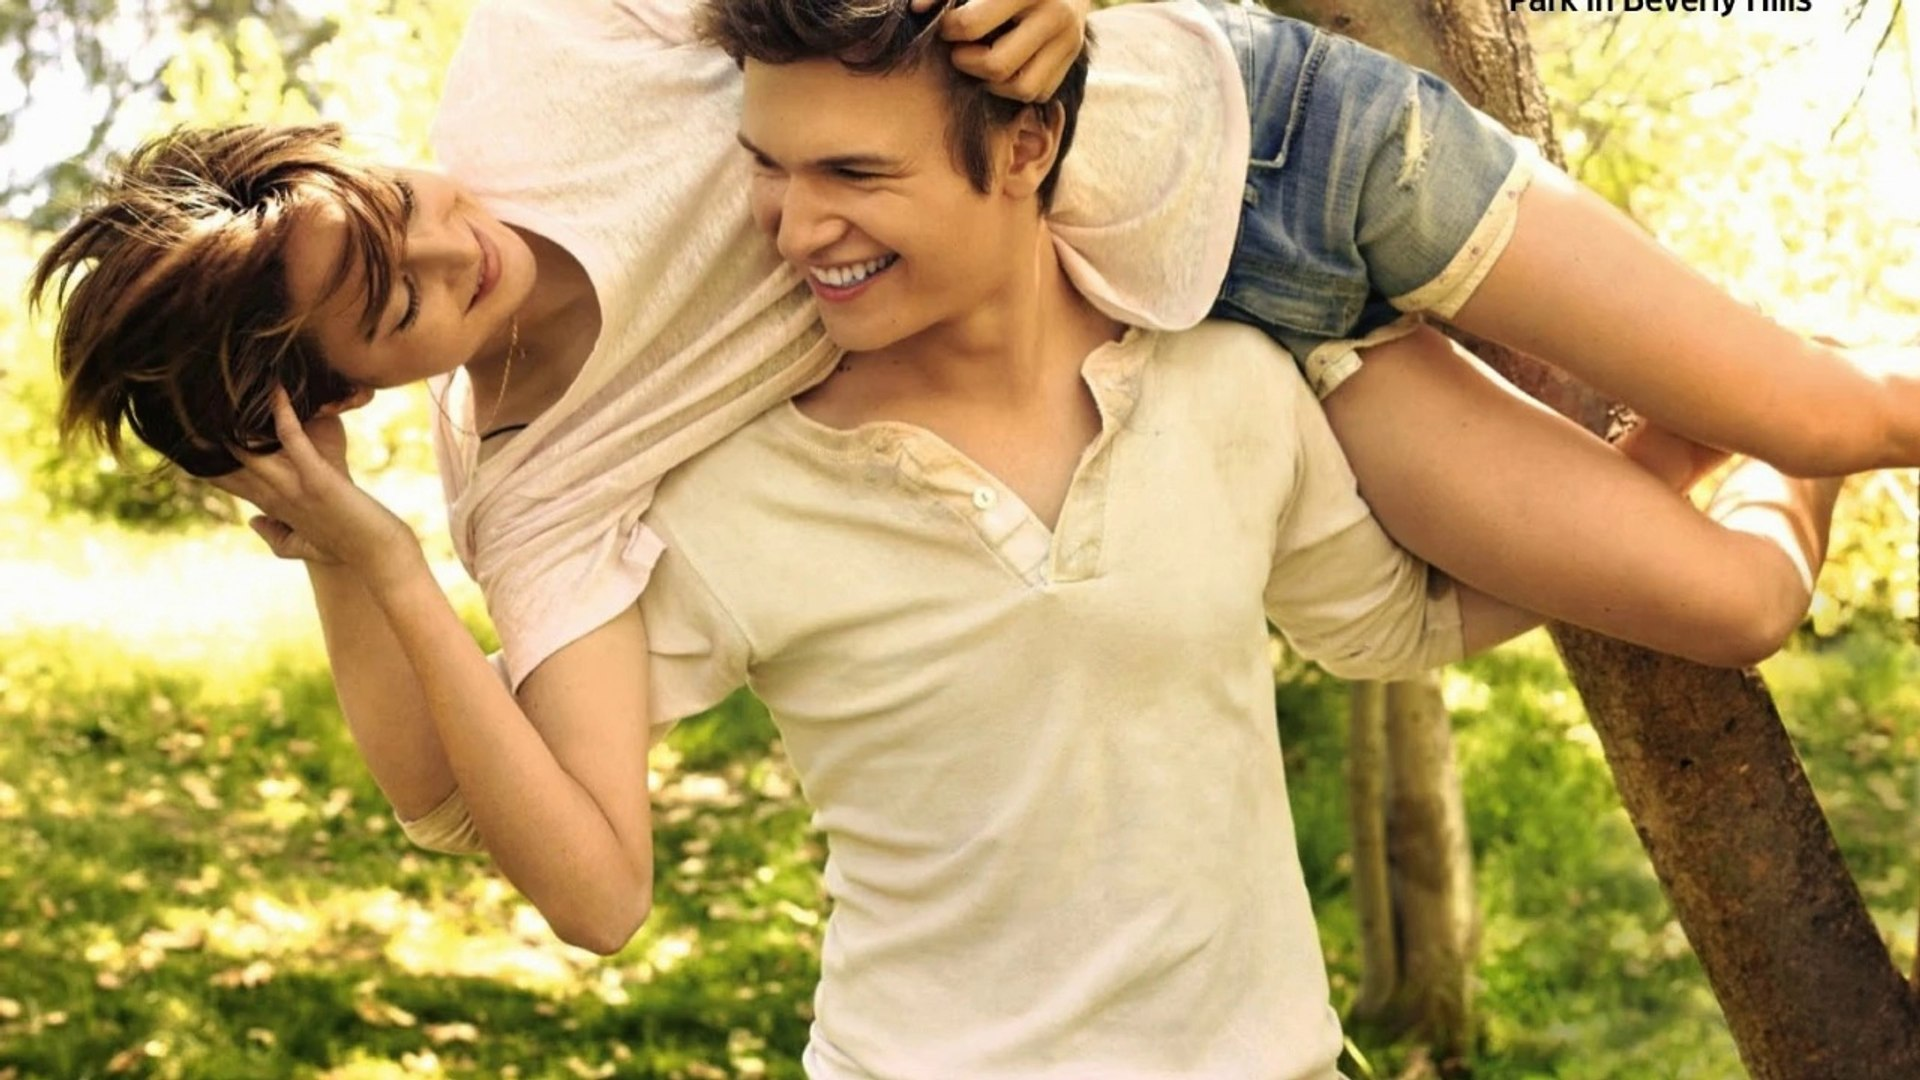 [[FULL#MOVIE]] Watch The Fault in Our Stars Full Movie Streaming Online 2014 @FILMFLIX##The Fault in